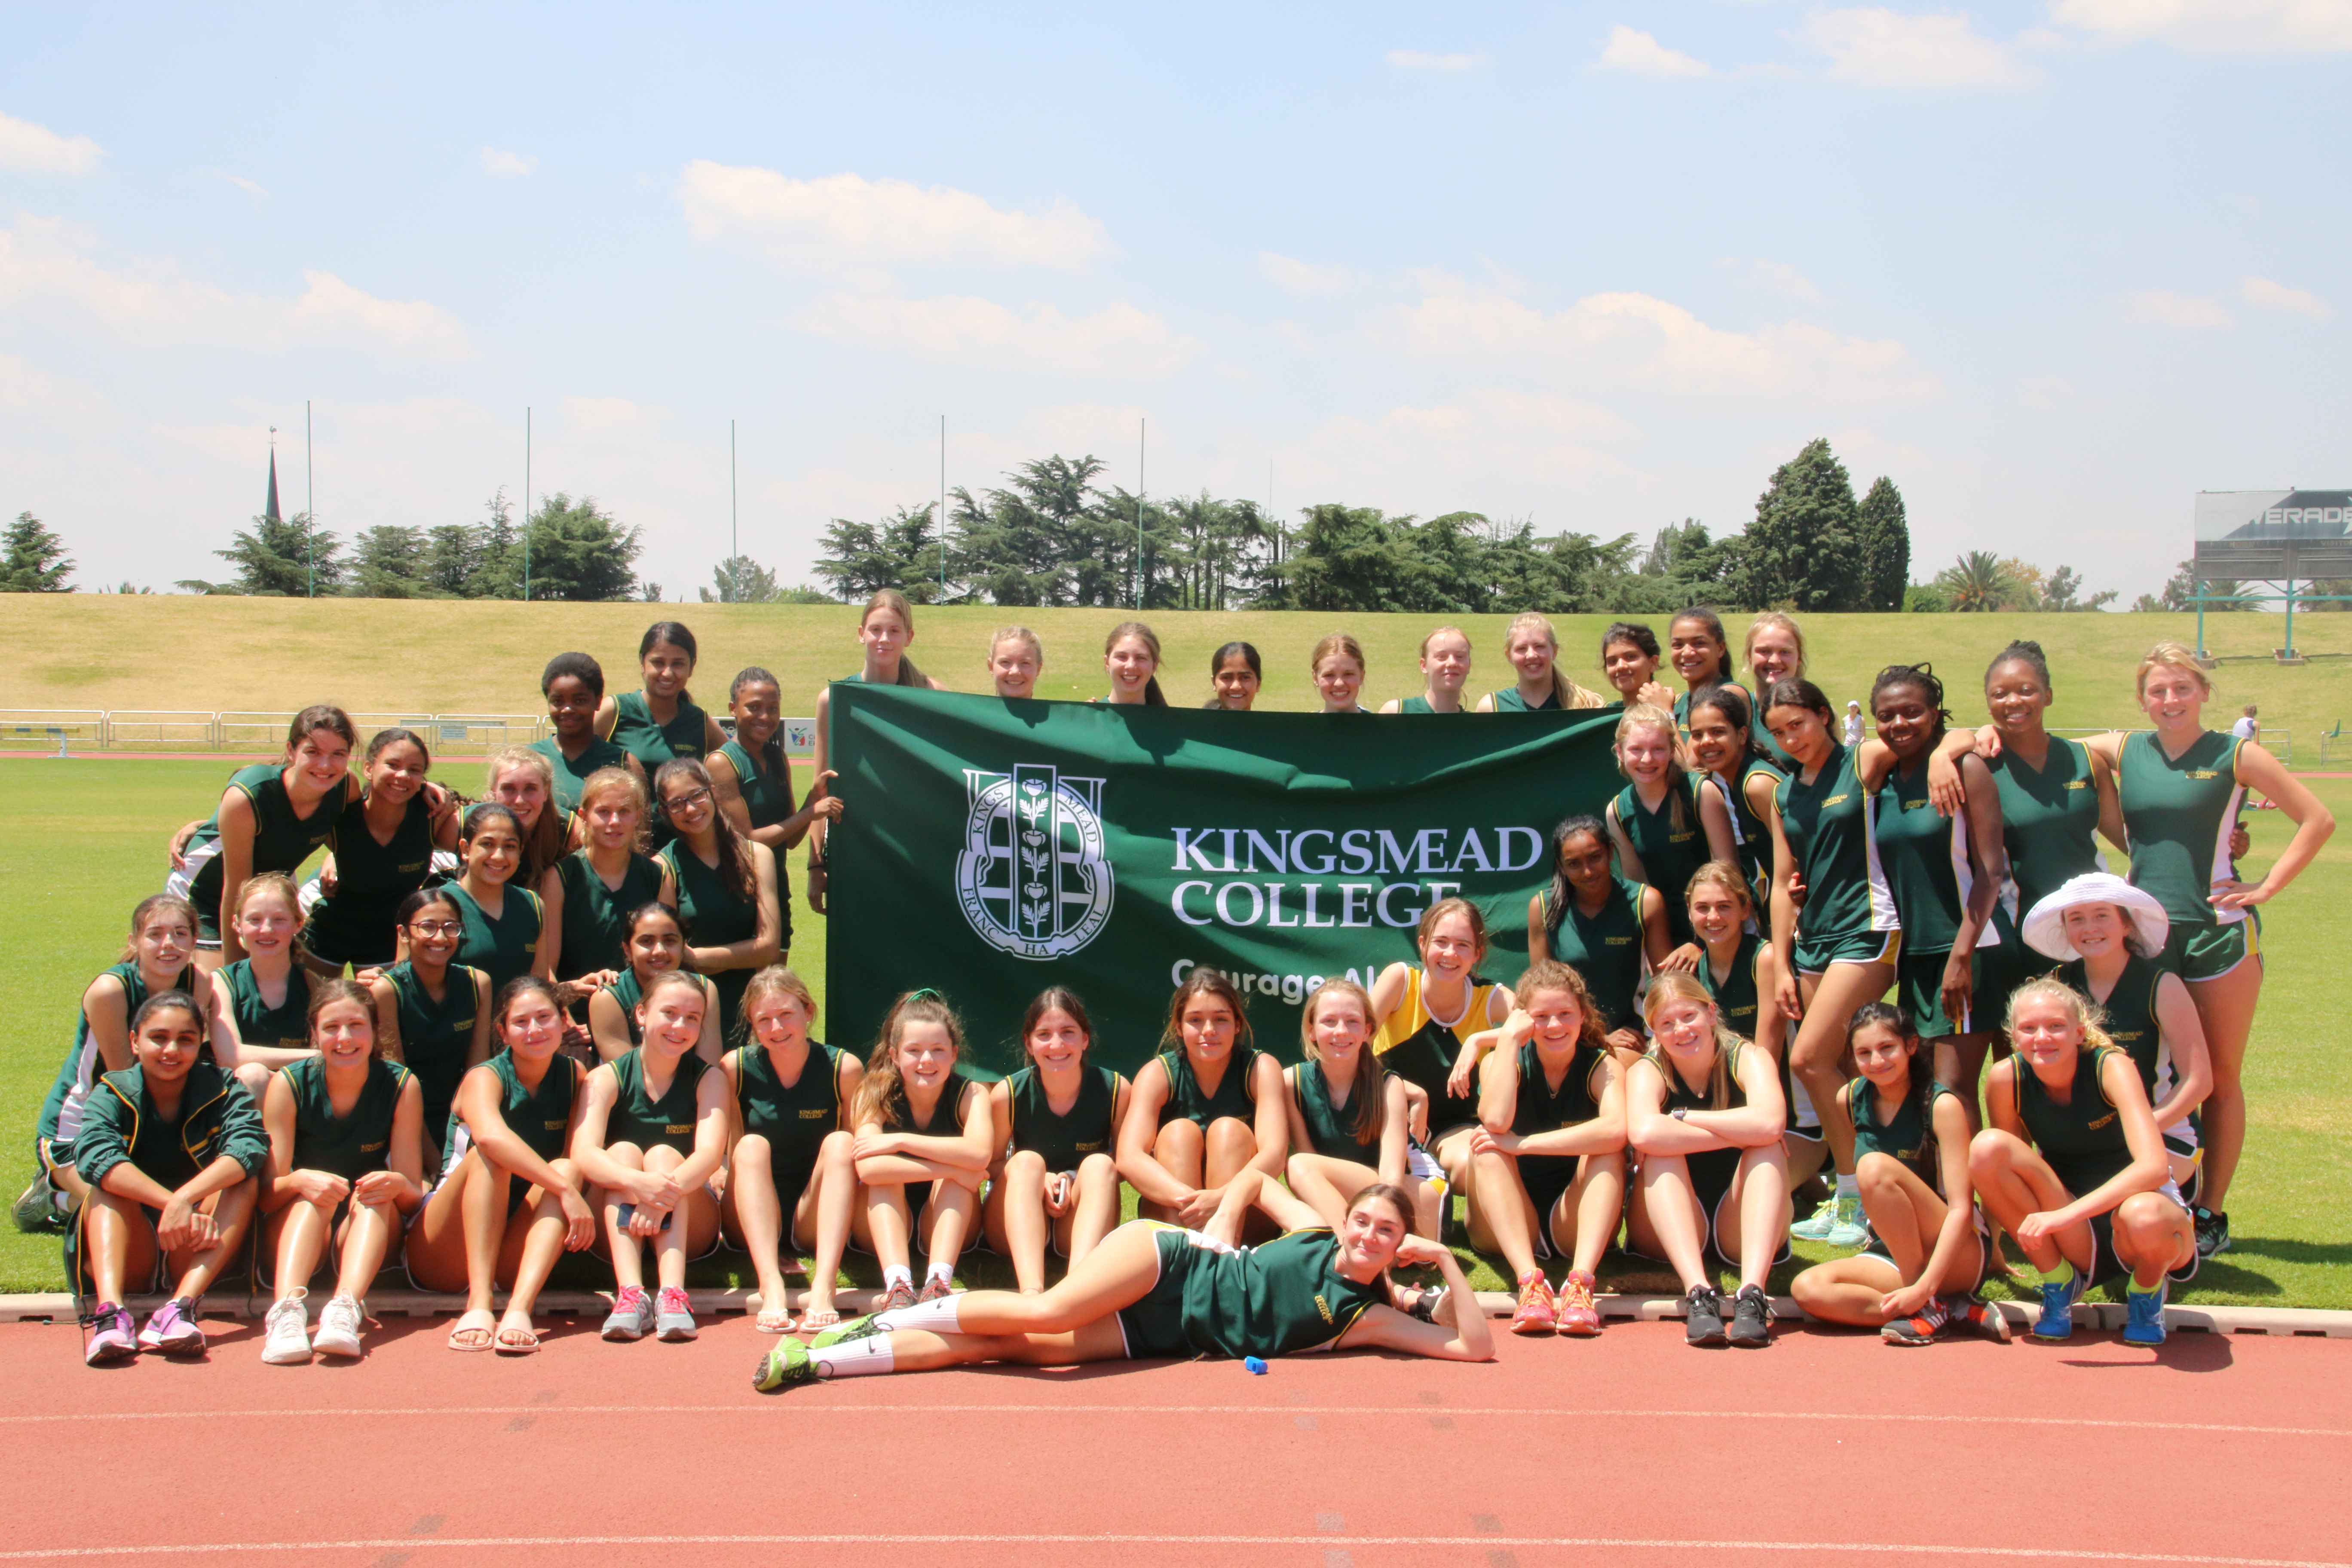 4c63900b5 The past few years have seen Athletics become one of Kingsmead's biggest  and most successful sports. It is no wonder that the whole school had  plenty to ...